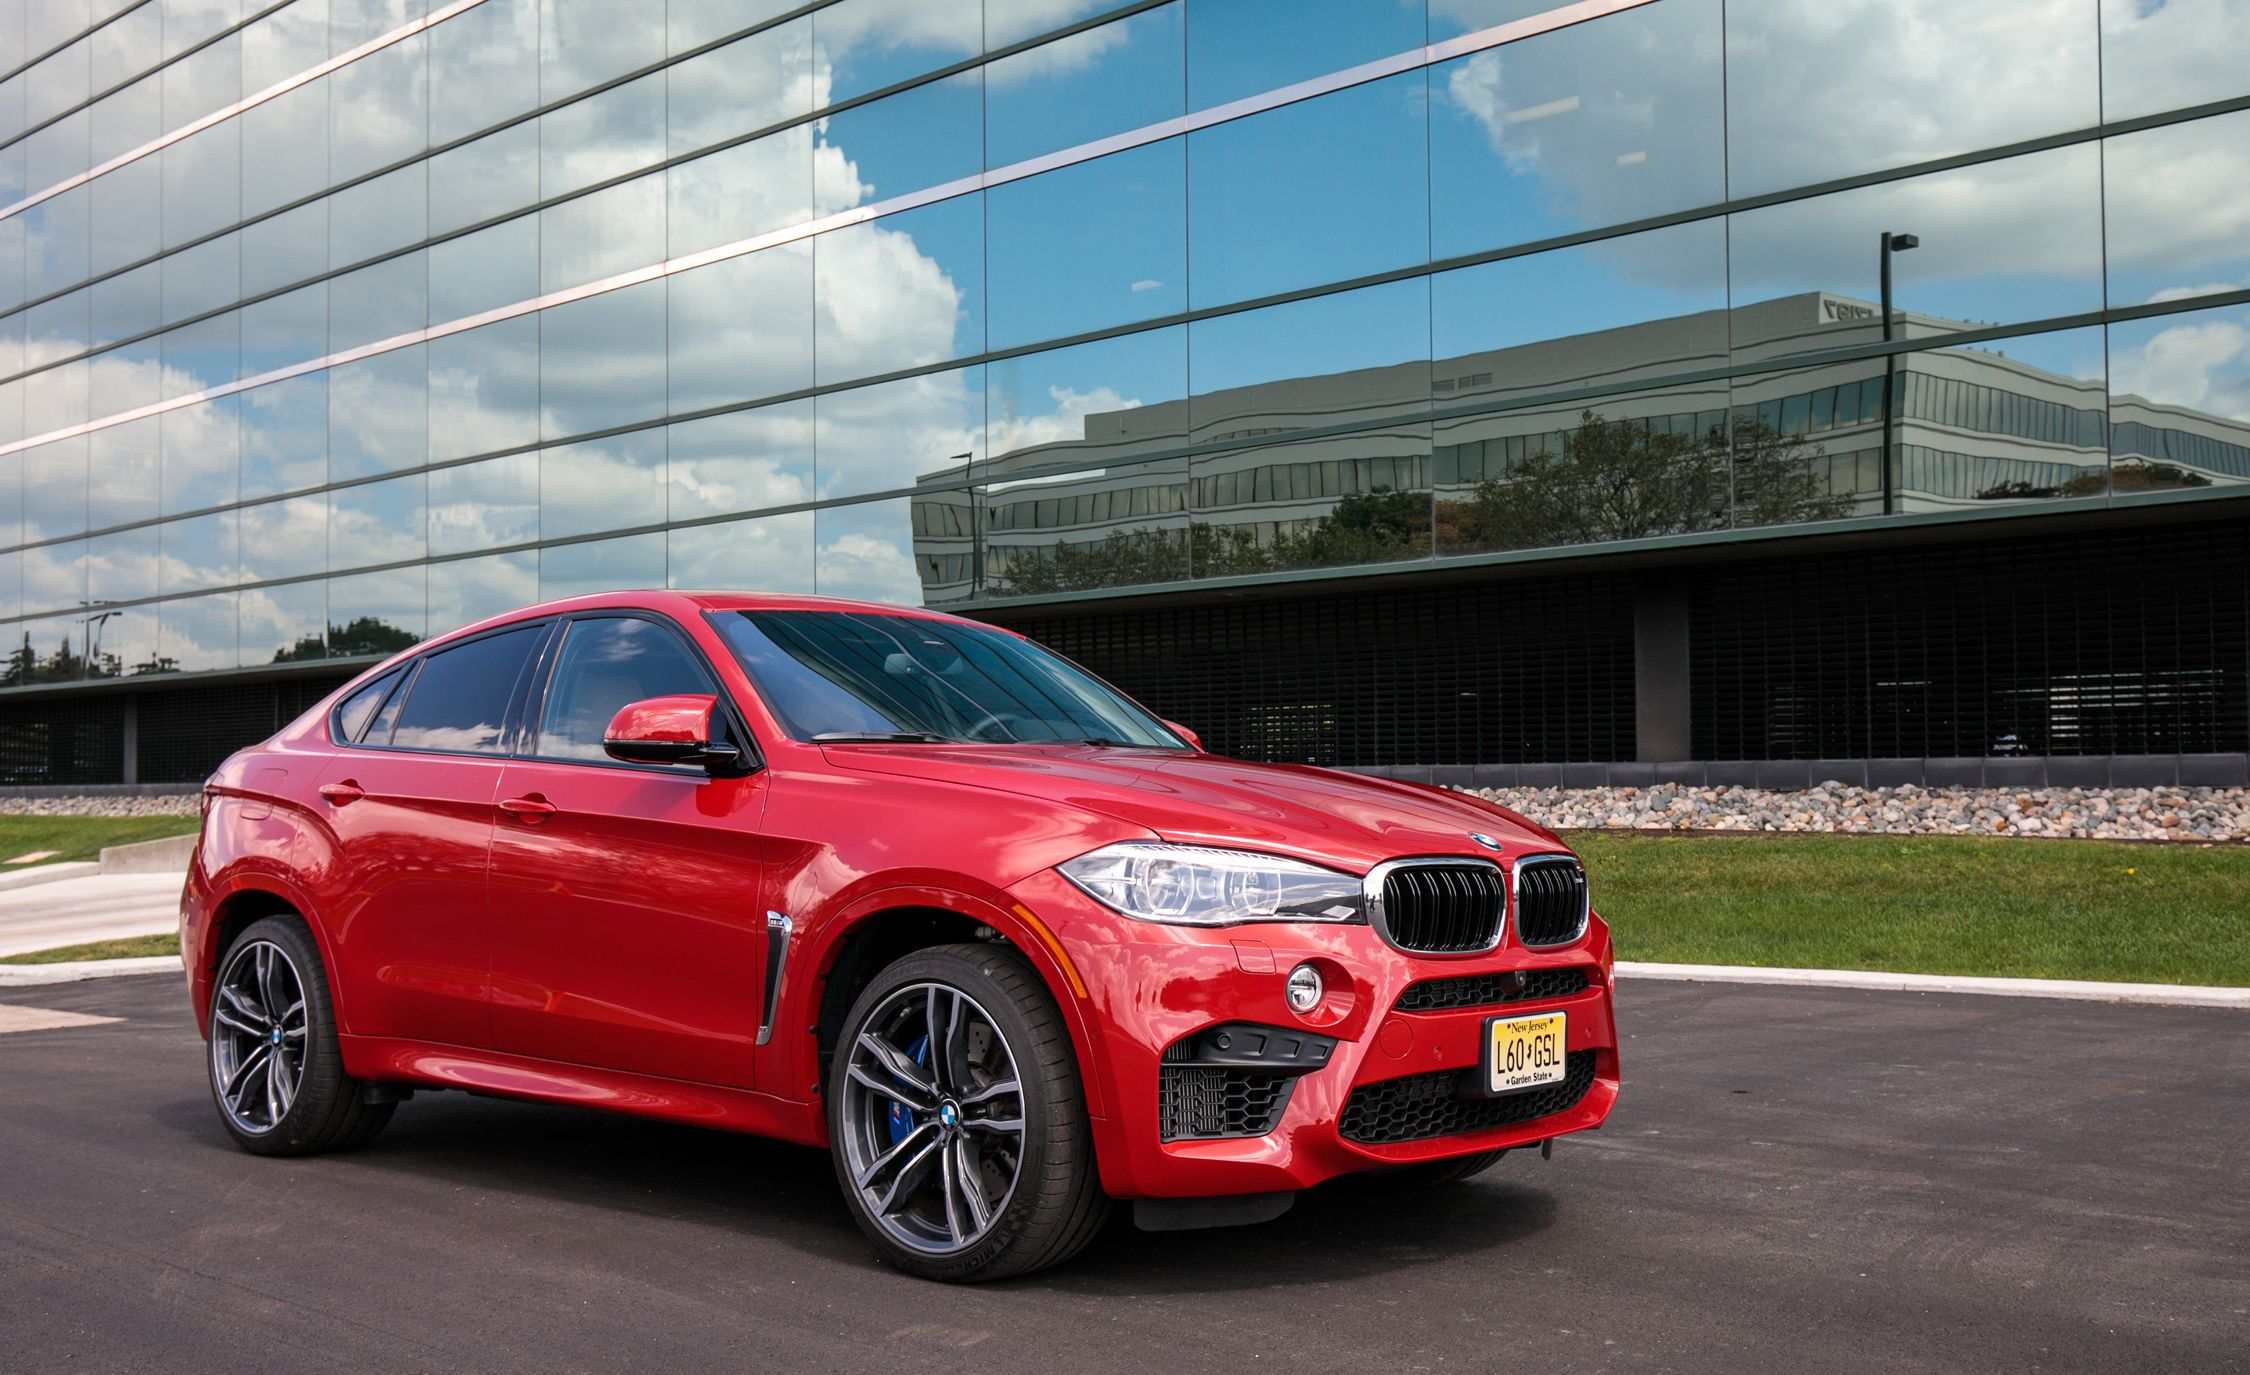 2017 Bmw X6 M Safety And Driver Assistance Review Car And Driver